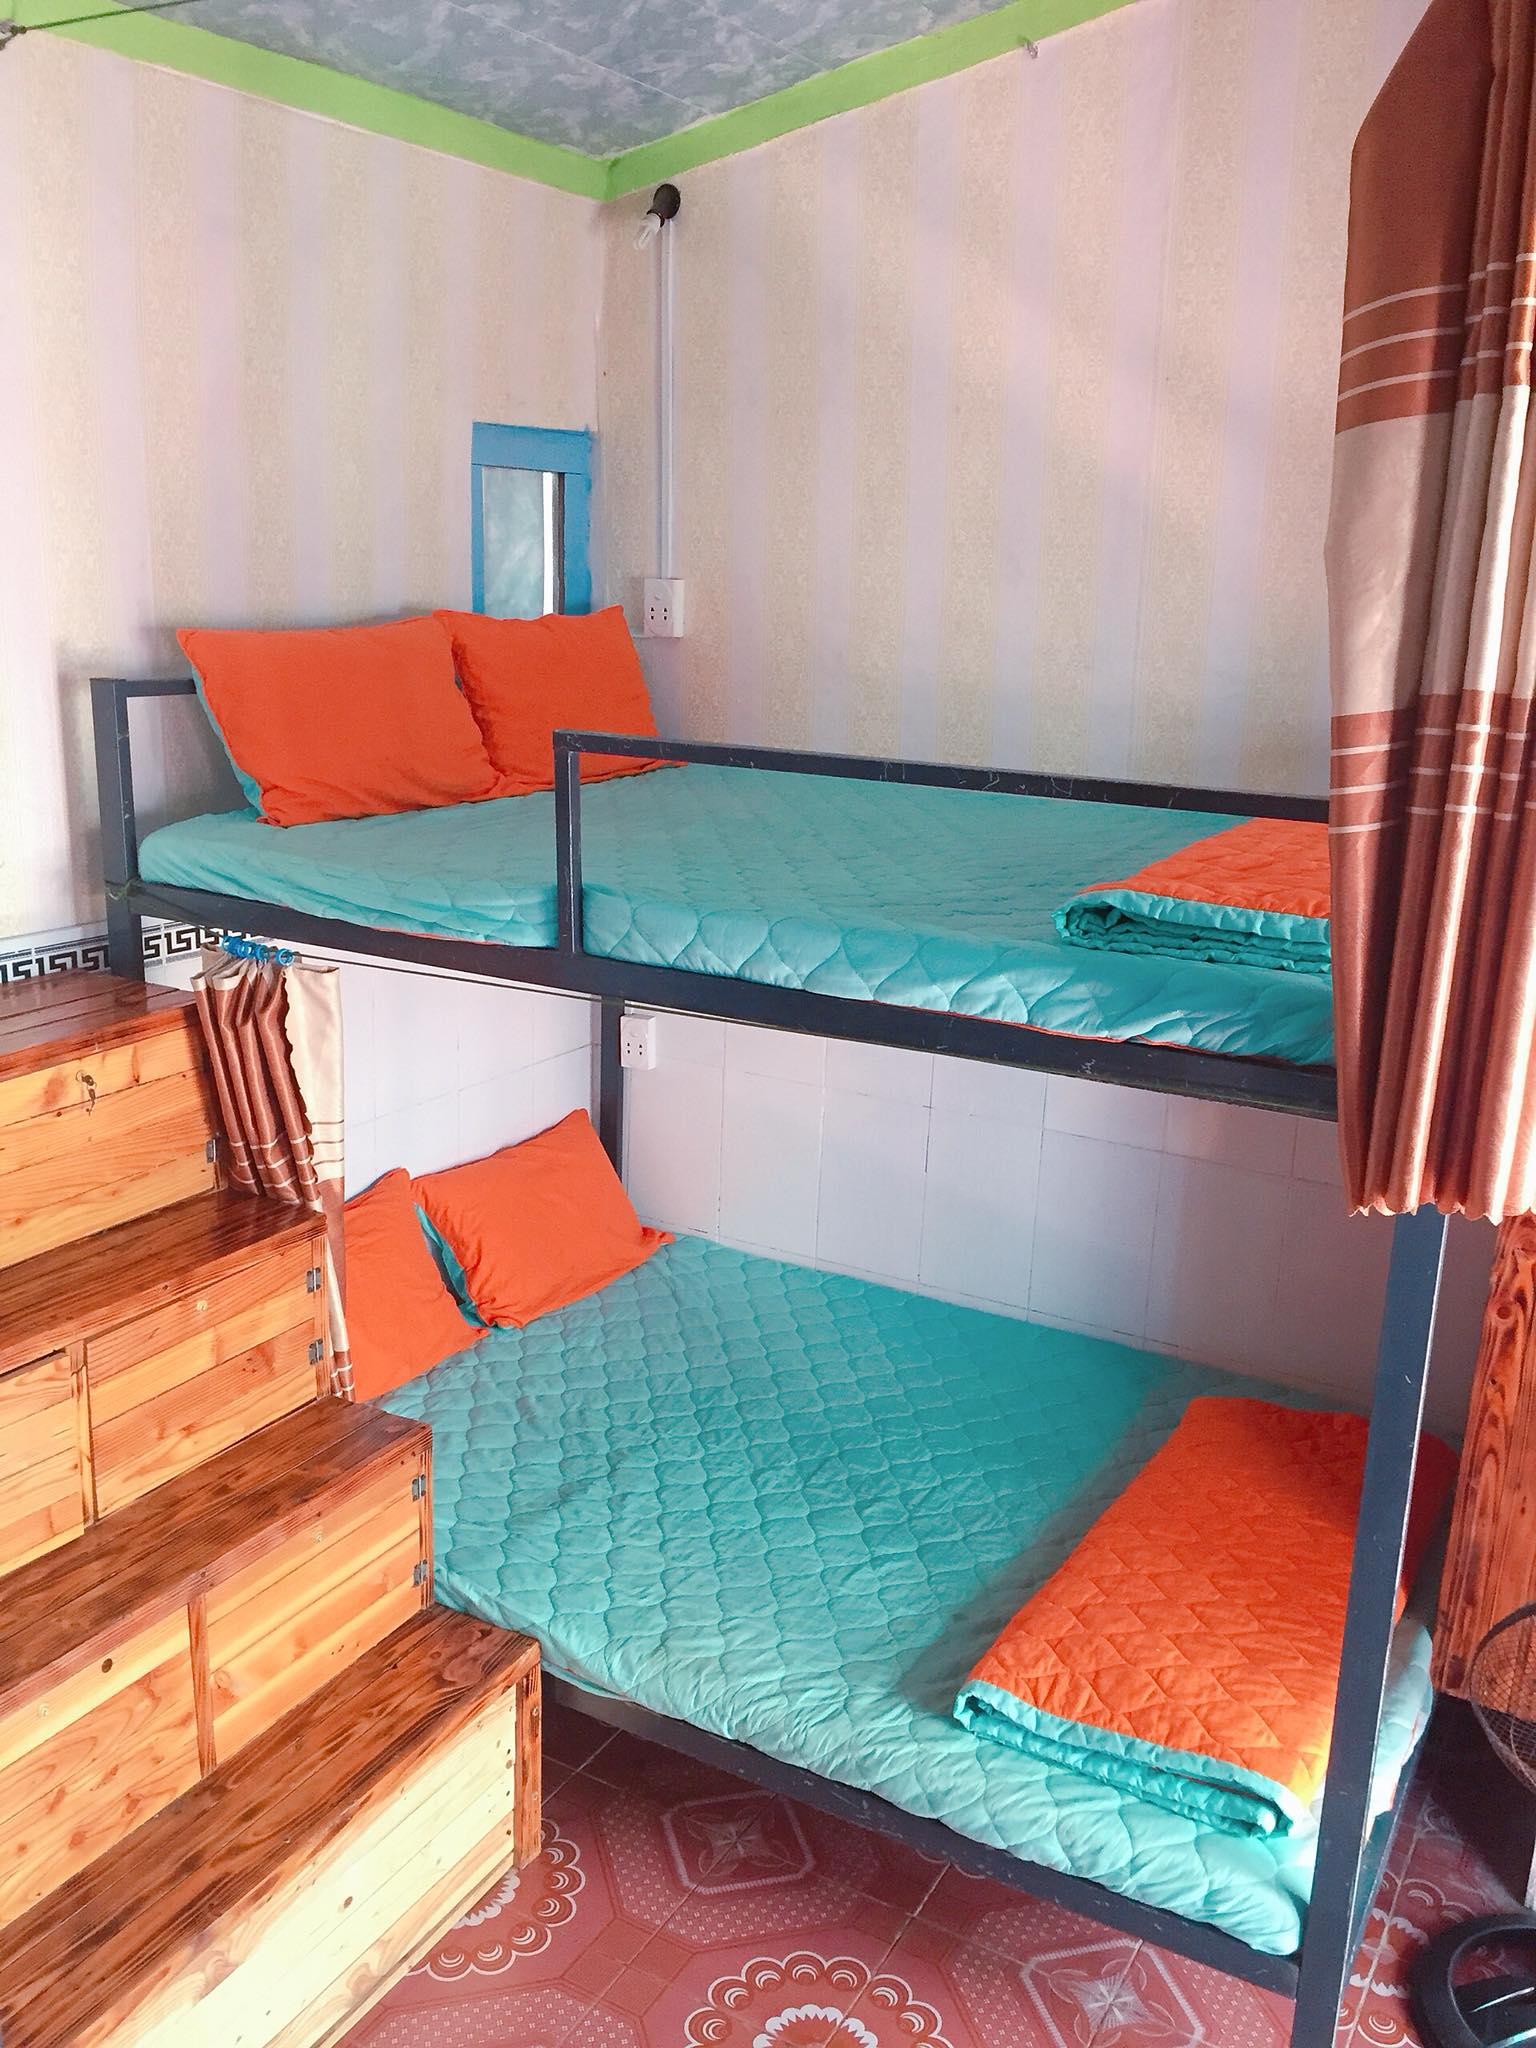 cao canh ly son homestay quang ngai